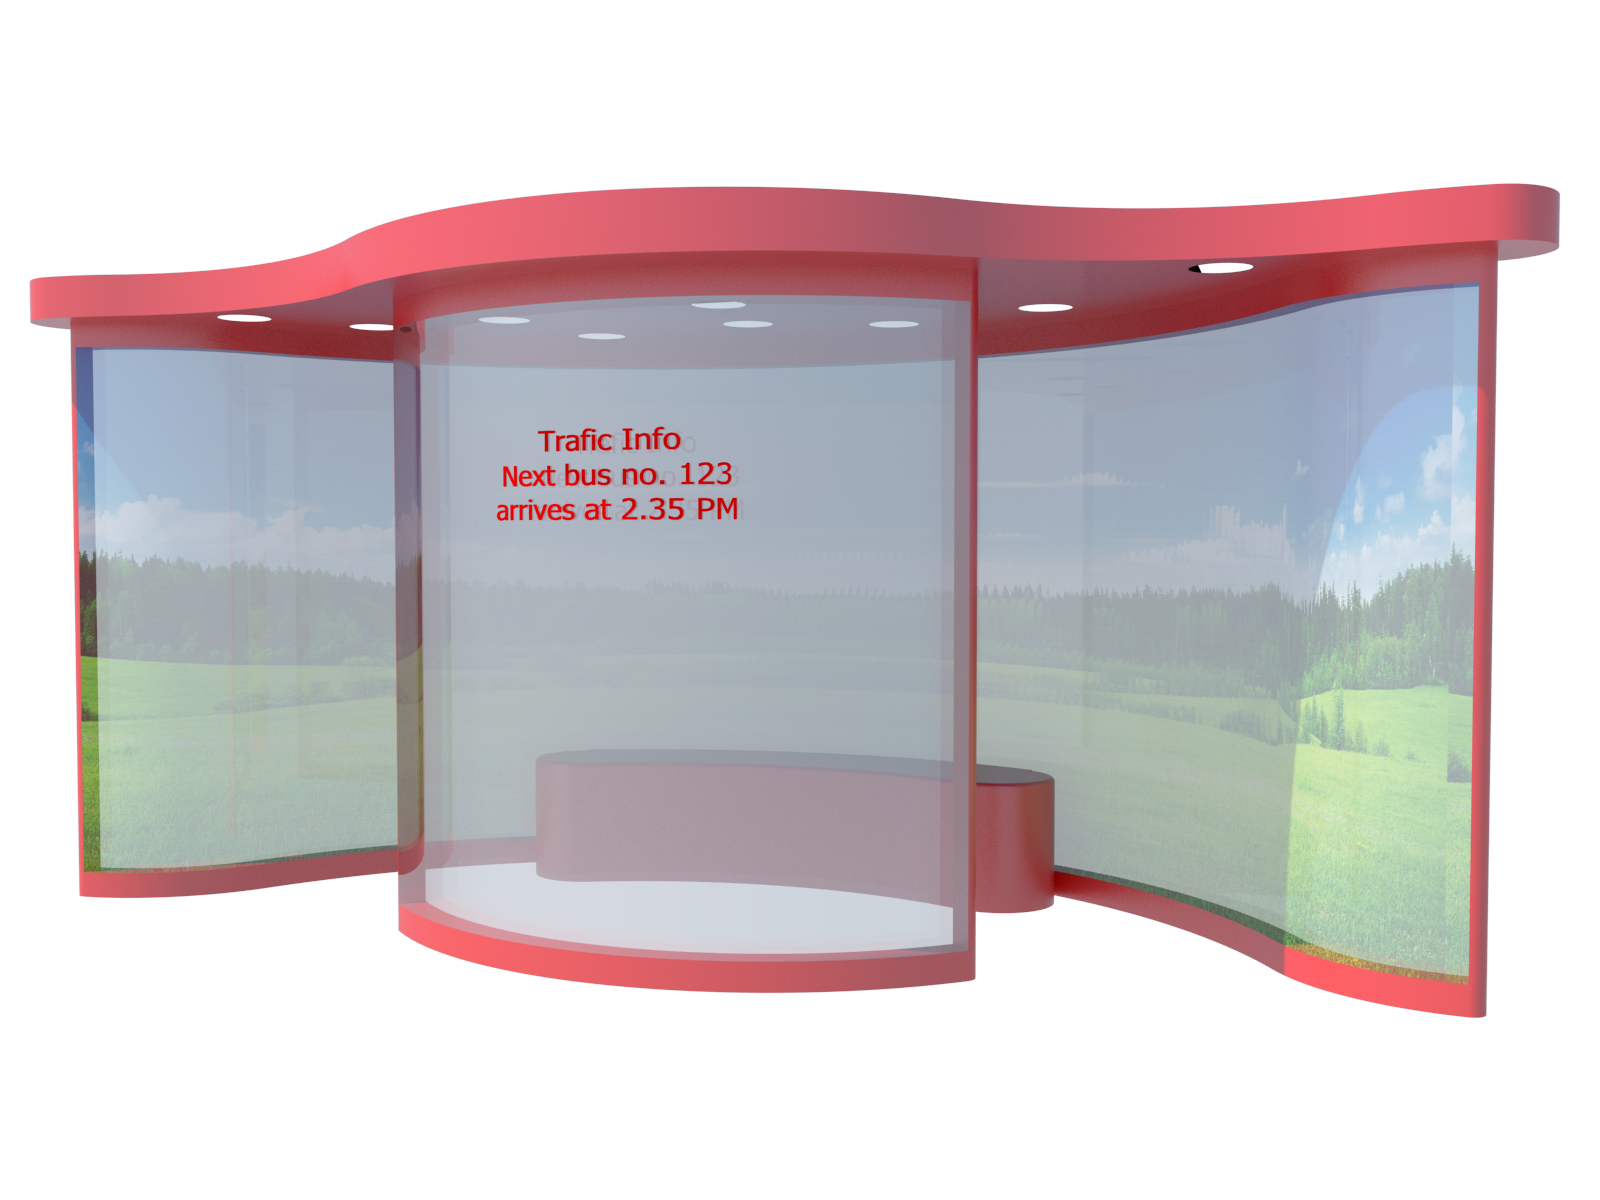 Curves New Design Of London Bus Stop Shelter By Mb The Bus Stop Is Solar Powered Lights Is Integrated With Warming And C Bus Stop Shelter Design Bus Shelters